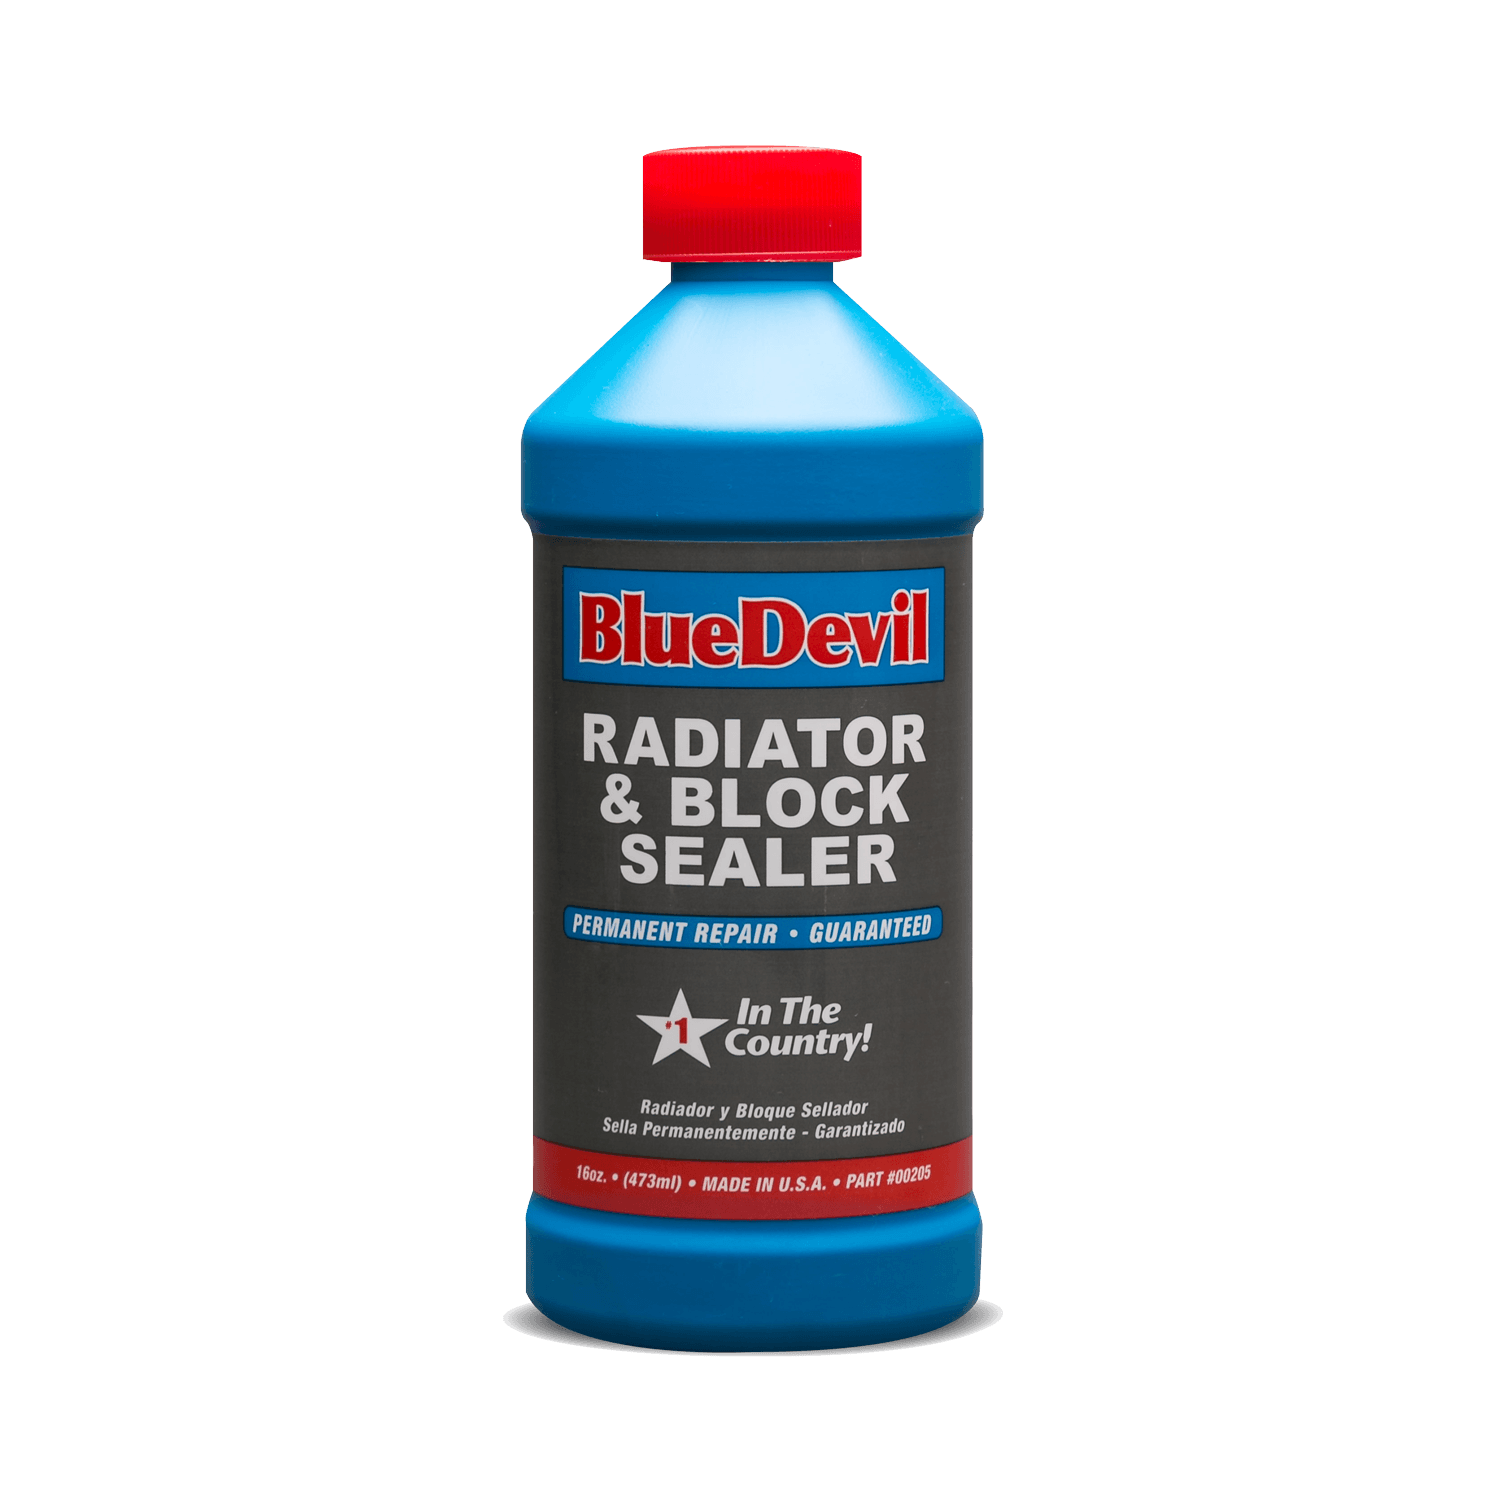 Radiator Leak Sealer | Radiator & Block Sealer | BlueDevil